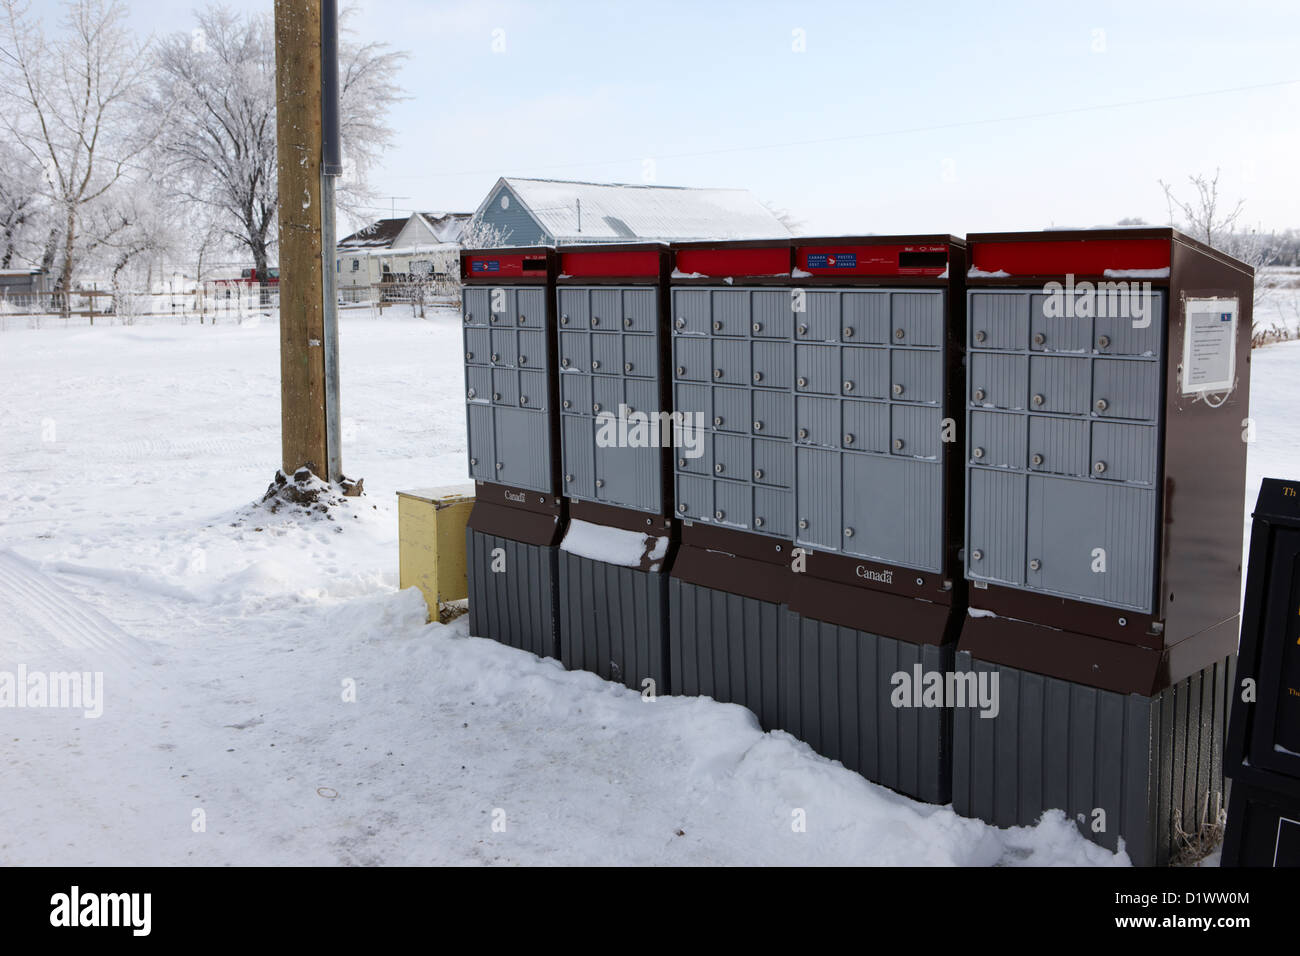 canada post post mailboxes in rural small town Forget Saskatchewan Canada - Stock Image